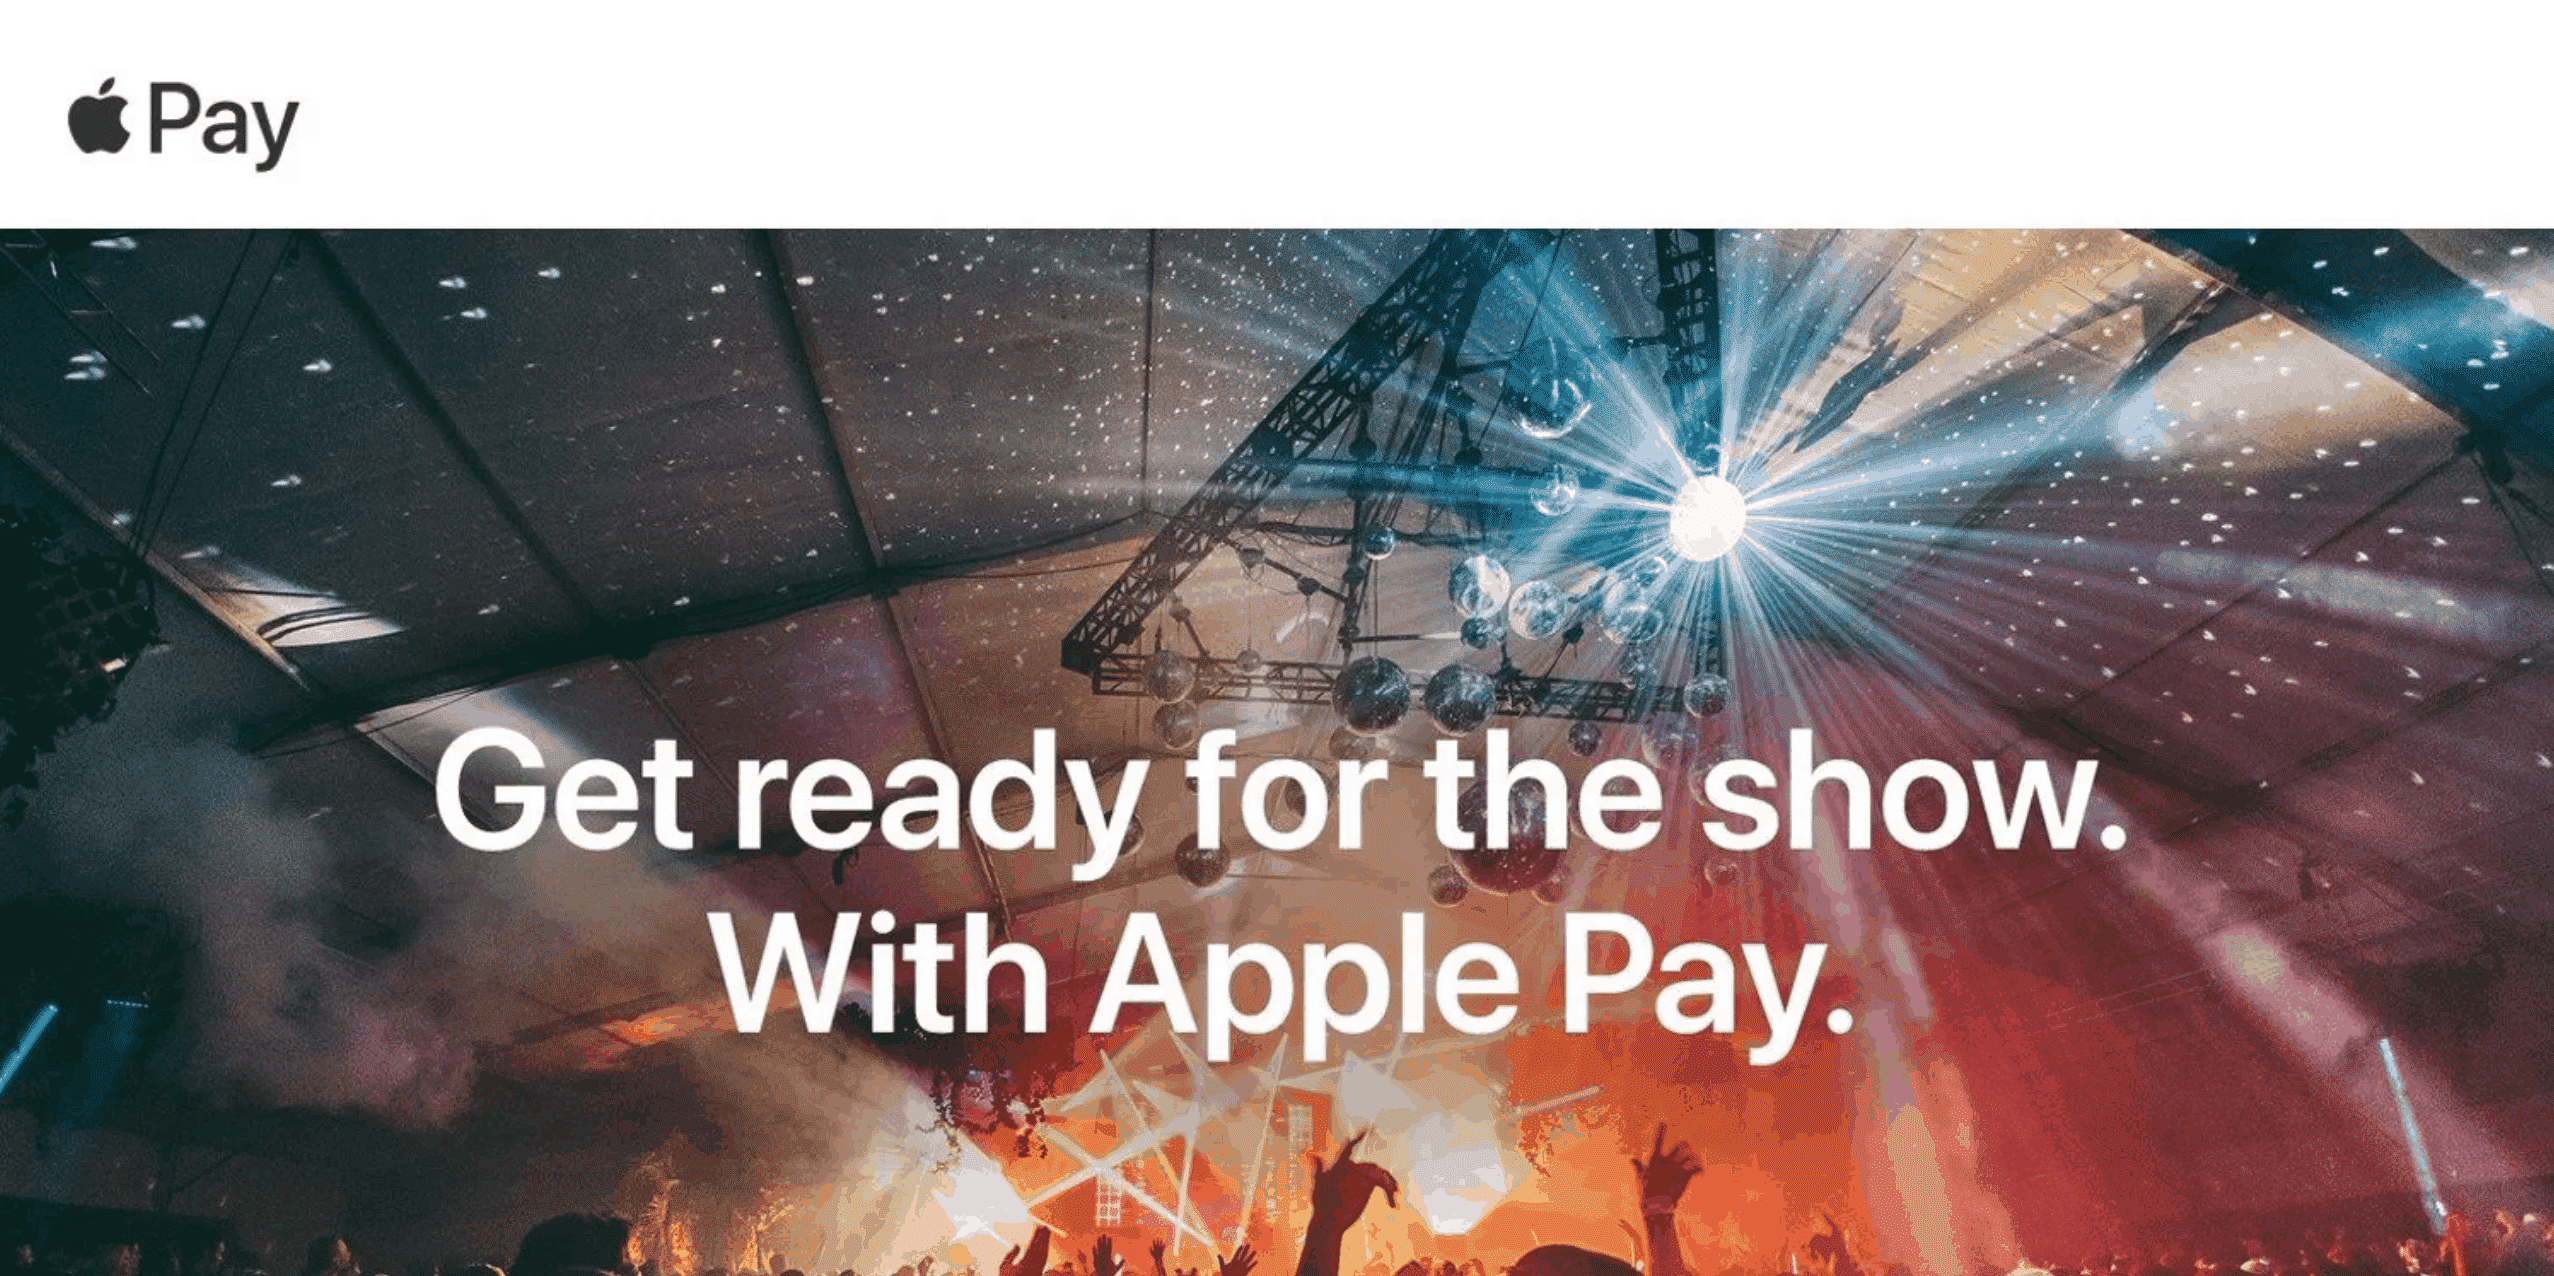 Get $10 Off on $100 StubHub Tickets on Apple Pay's Newest Promo